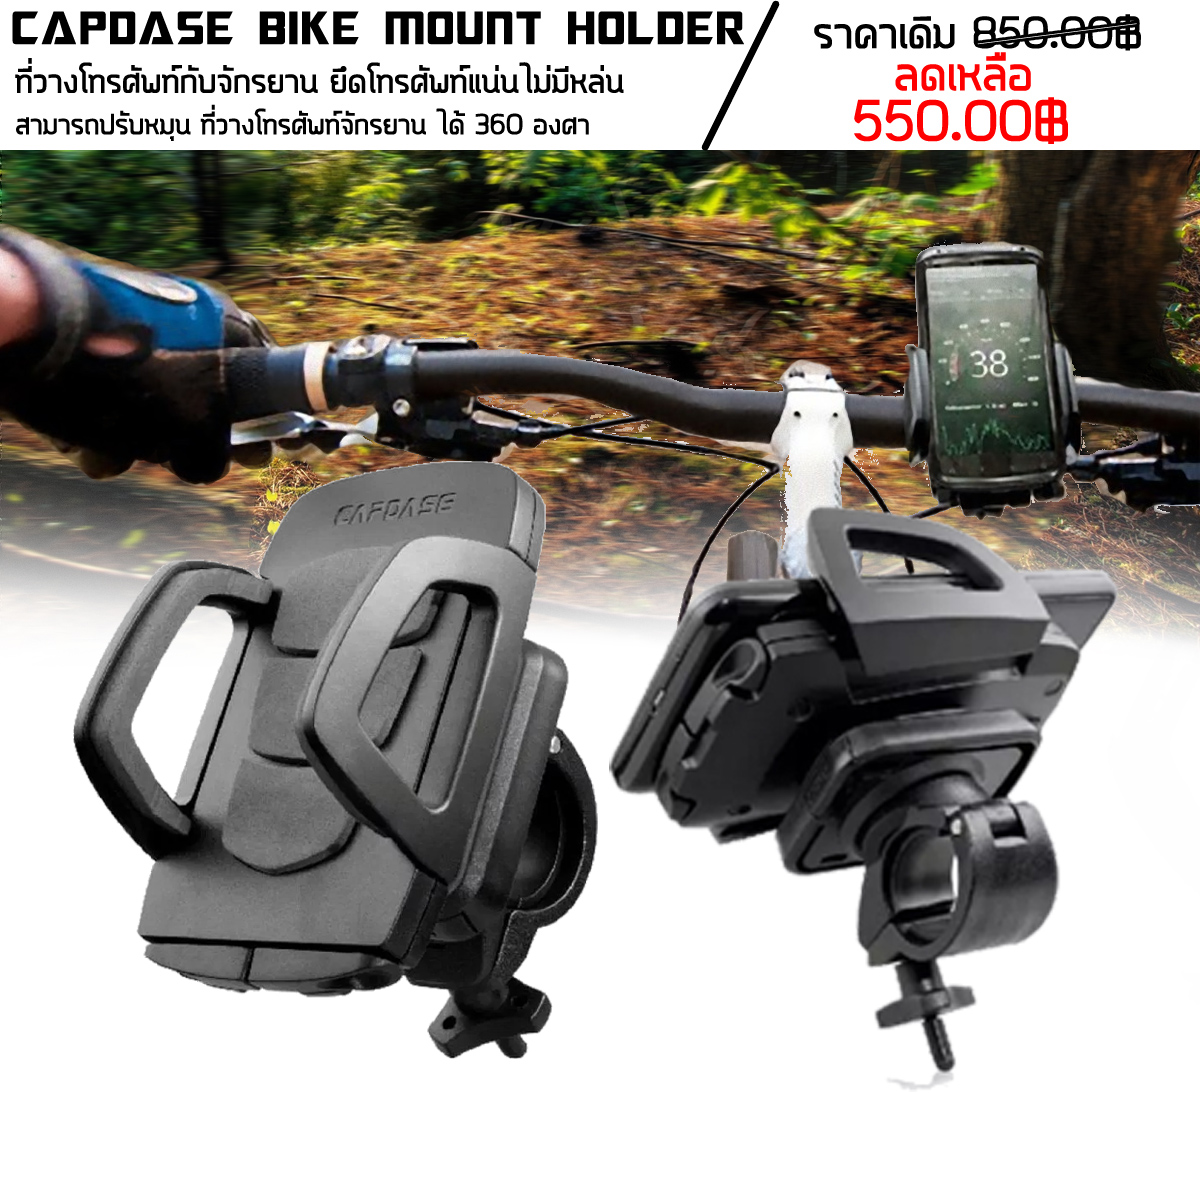 Capdase Bike Mount Holder